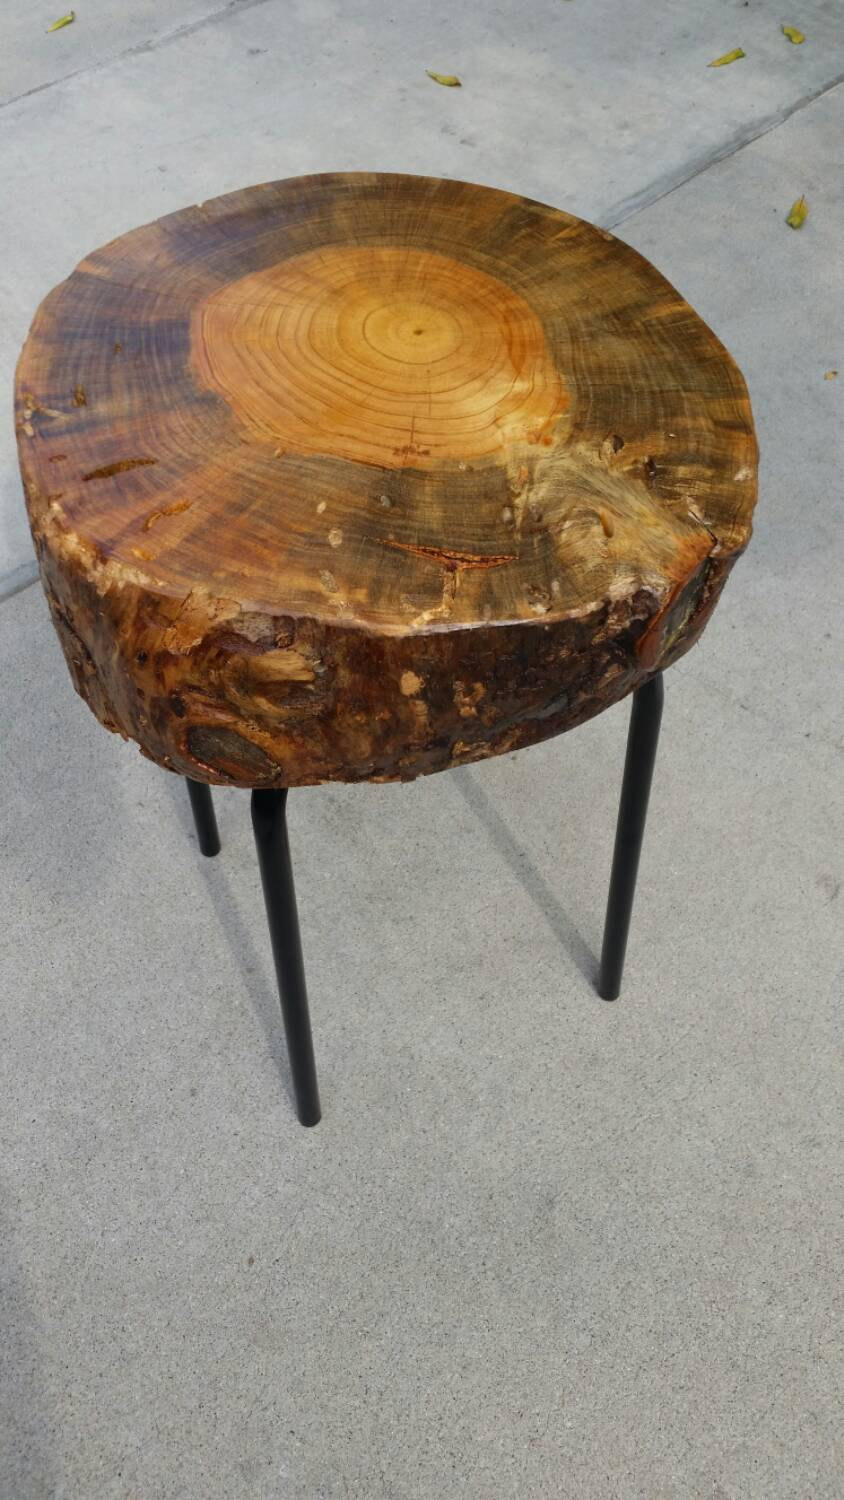 mosaic patio side table the perfect unbelievable tree stump end elegant coffee with diy trunk above solid acacia teton white gloss argos round glass world market couch ethan allen